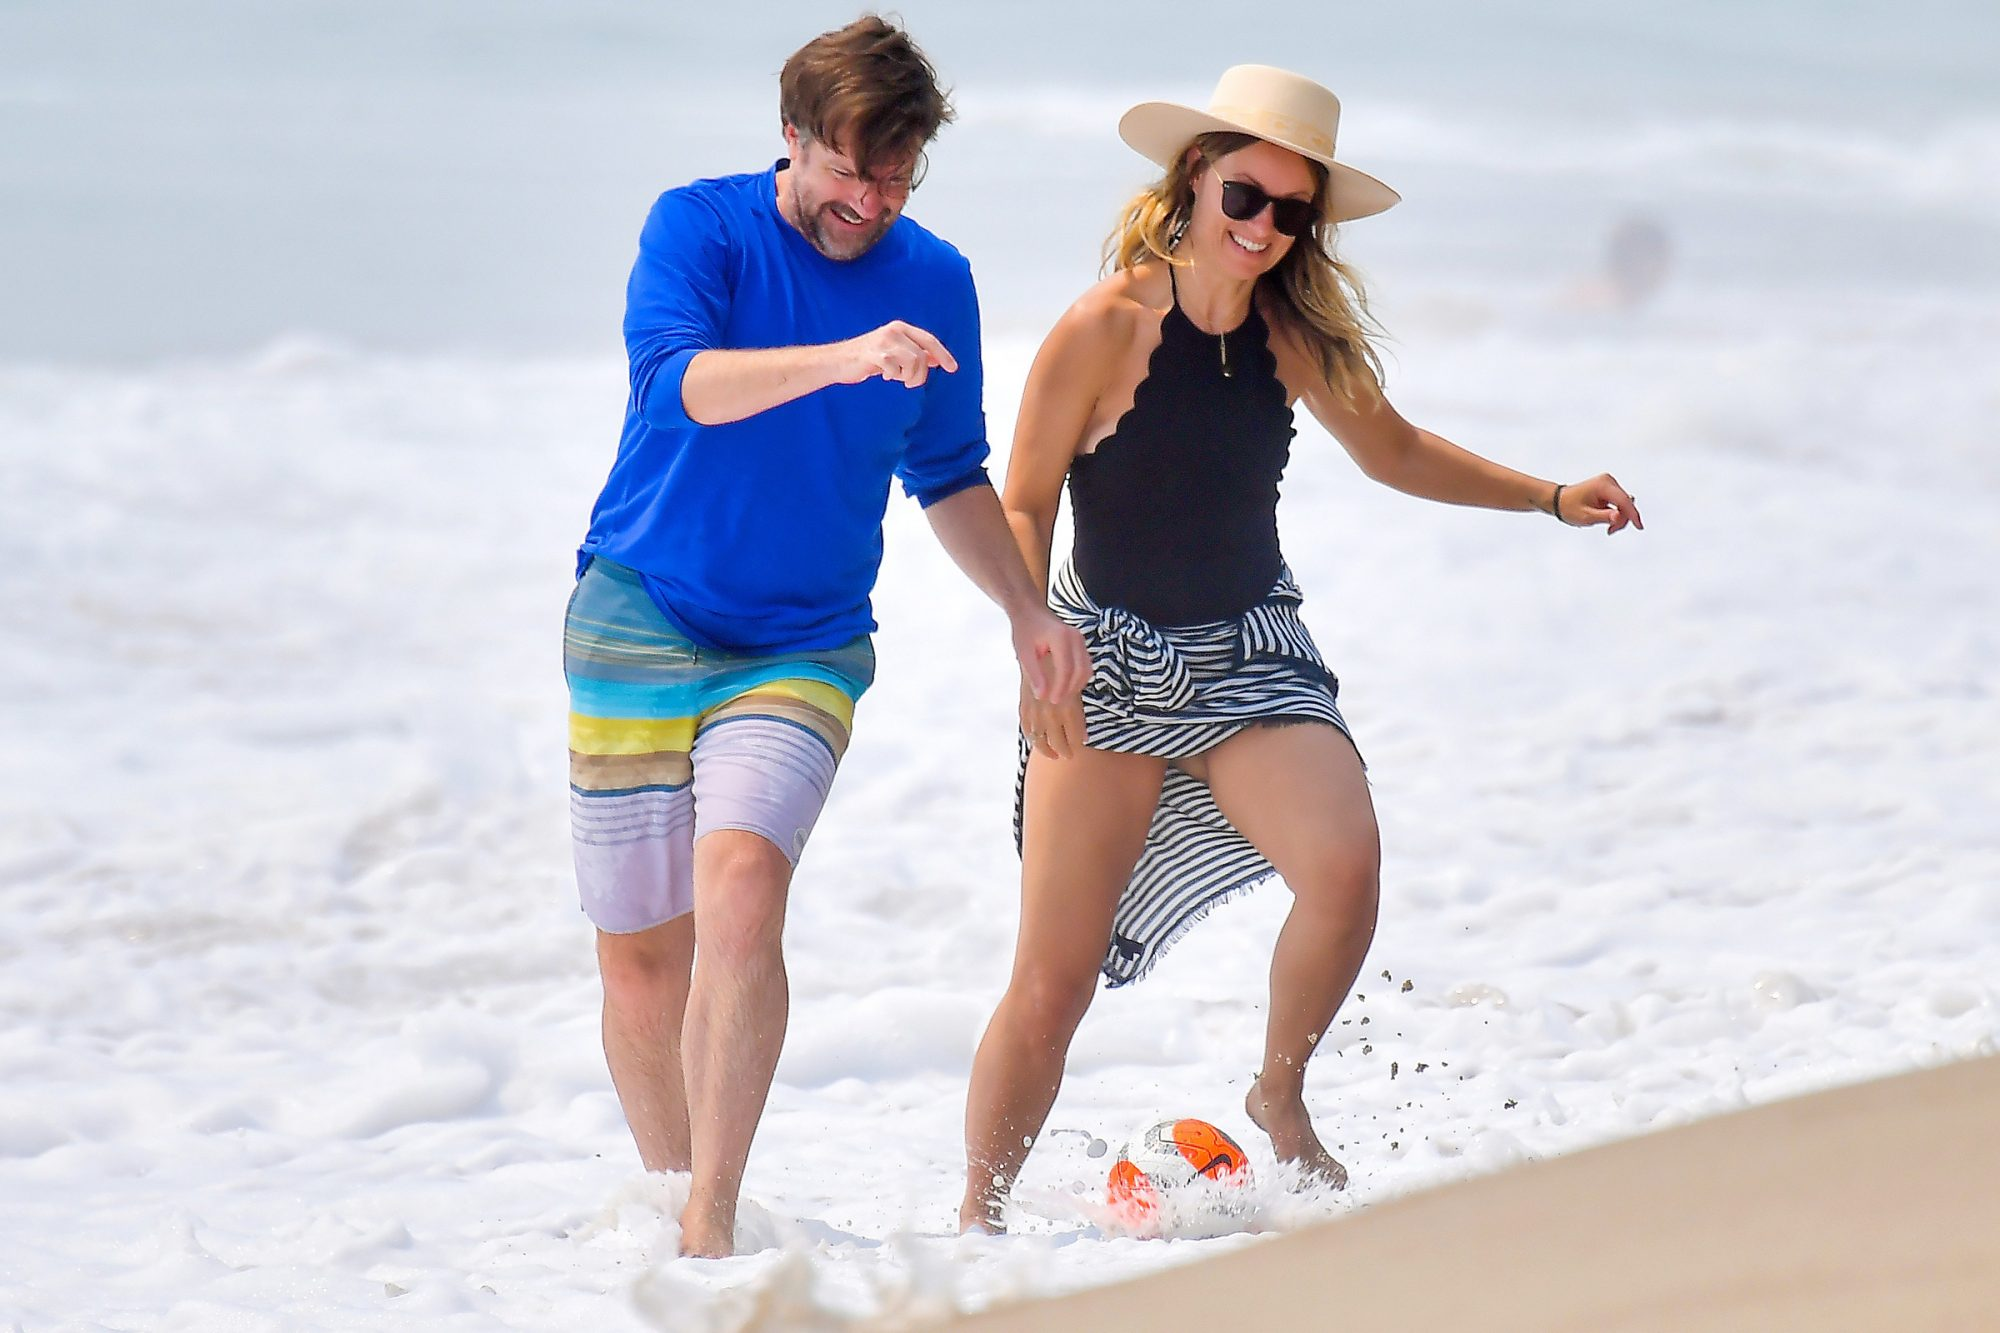 Olivia Wilde and her Husband Jason Sudeikis are all smiles as they spend some time together on the beach in Malibu